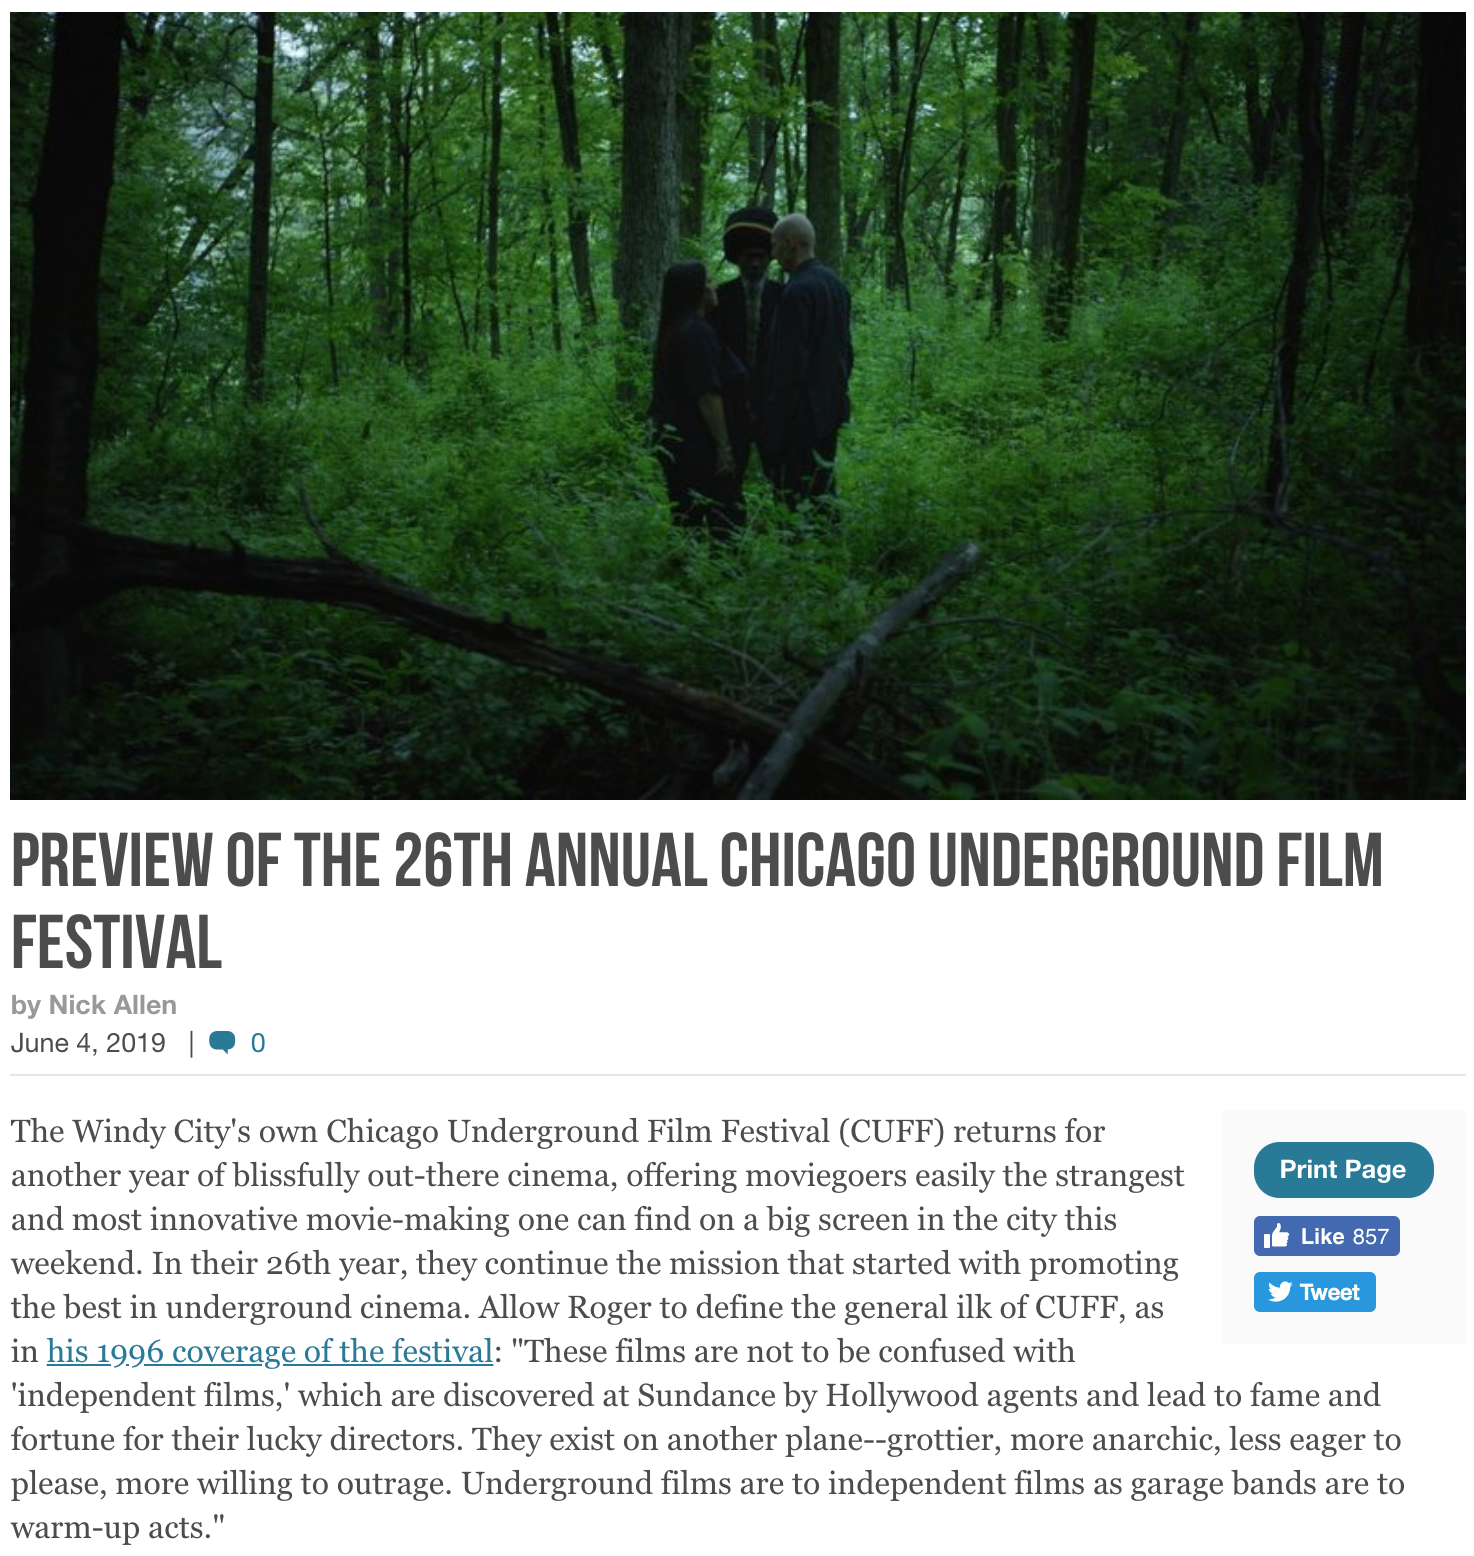 Preview of the 26th Annual Chicago Underground Film Festival.png